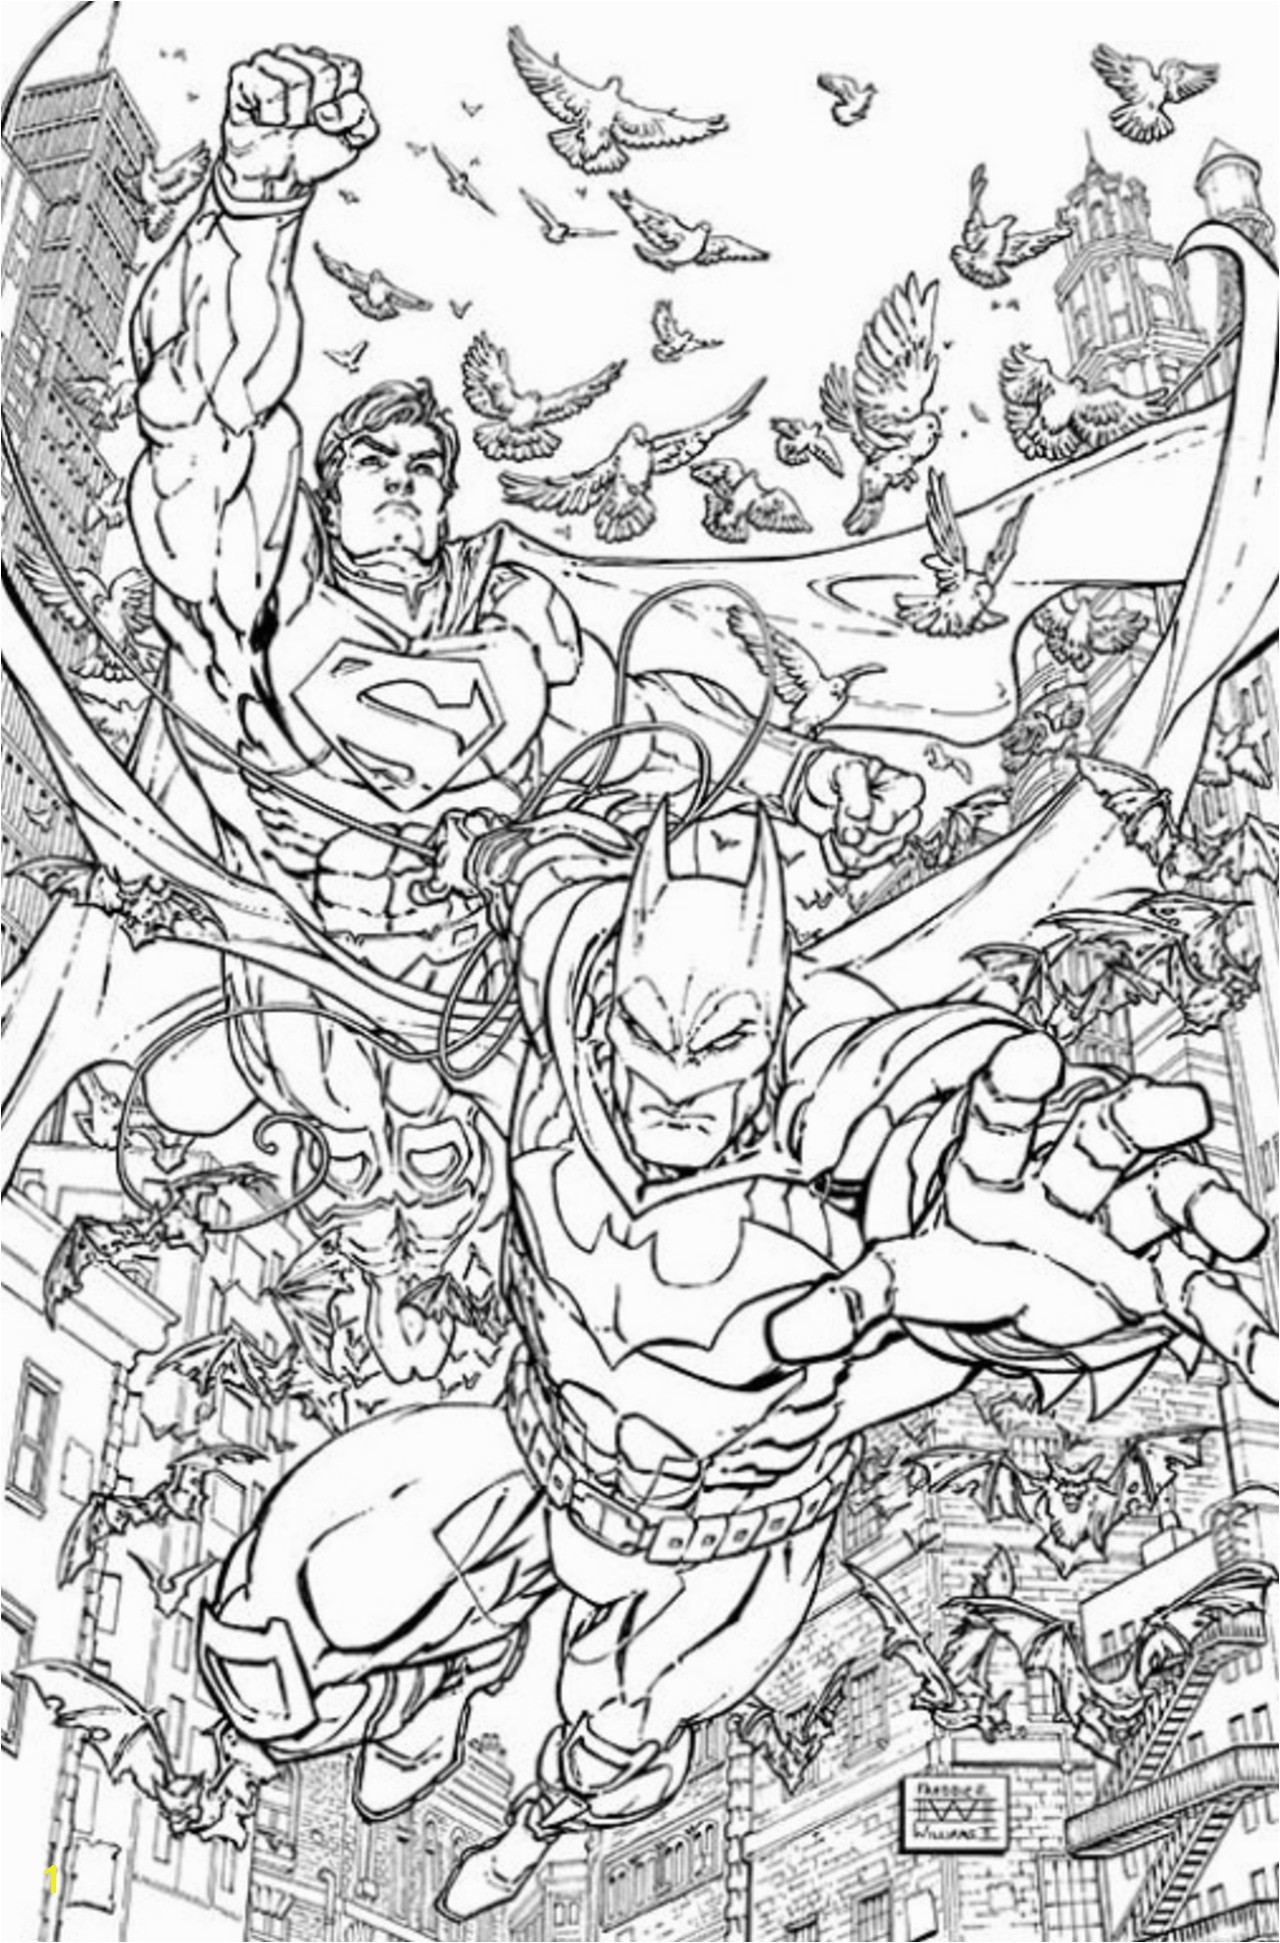 Dc ics Coloring Pages 97 with Dc ics Coloring Pages